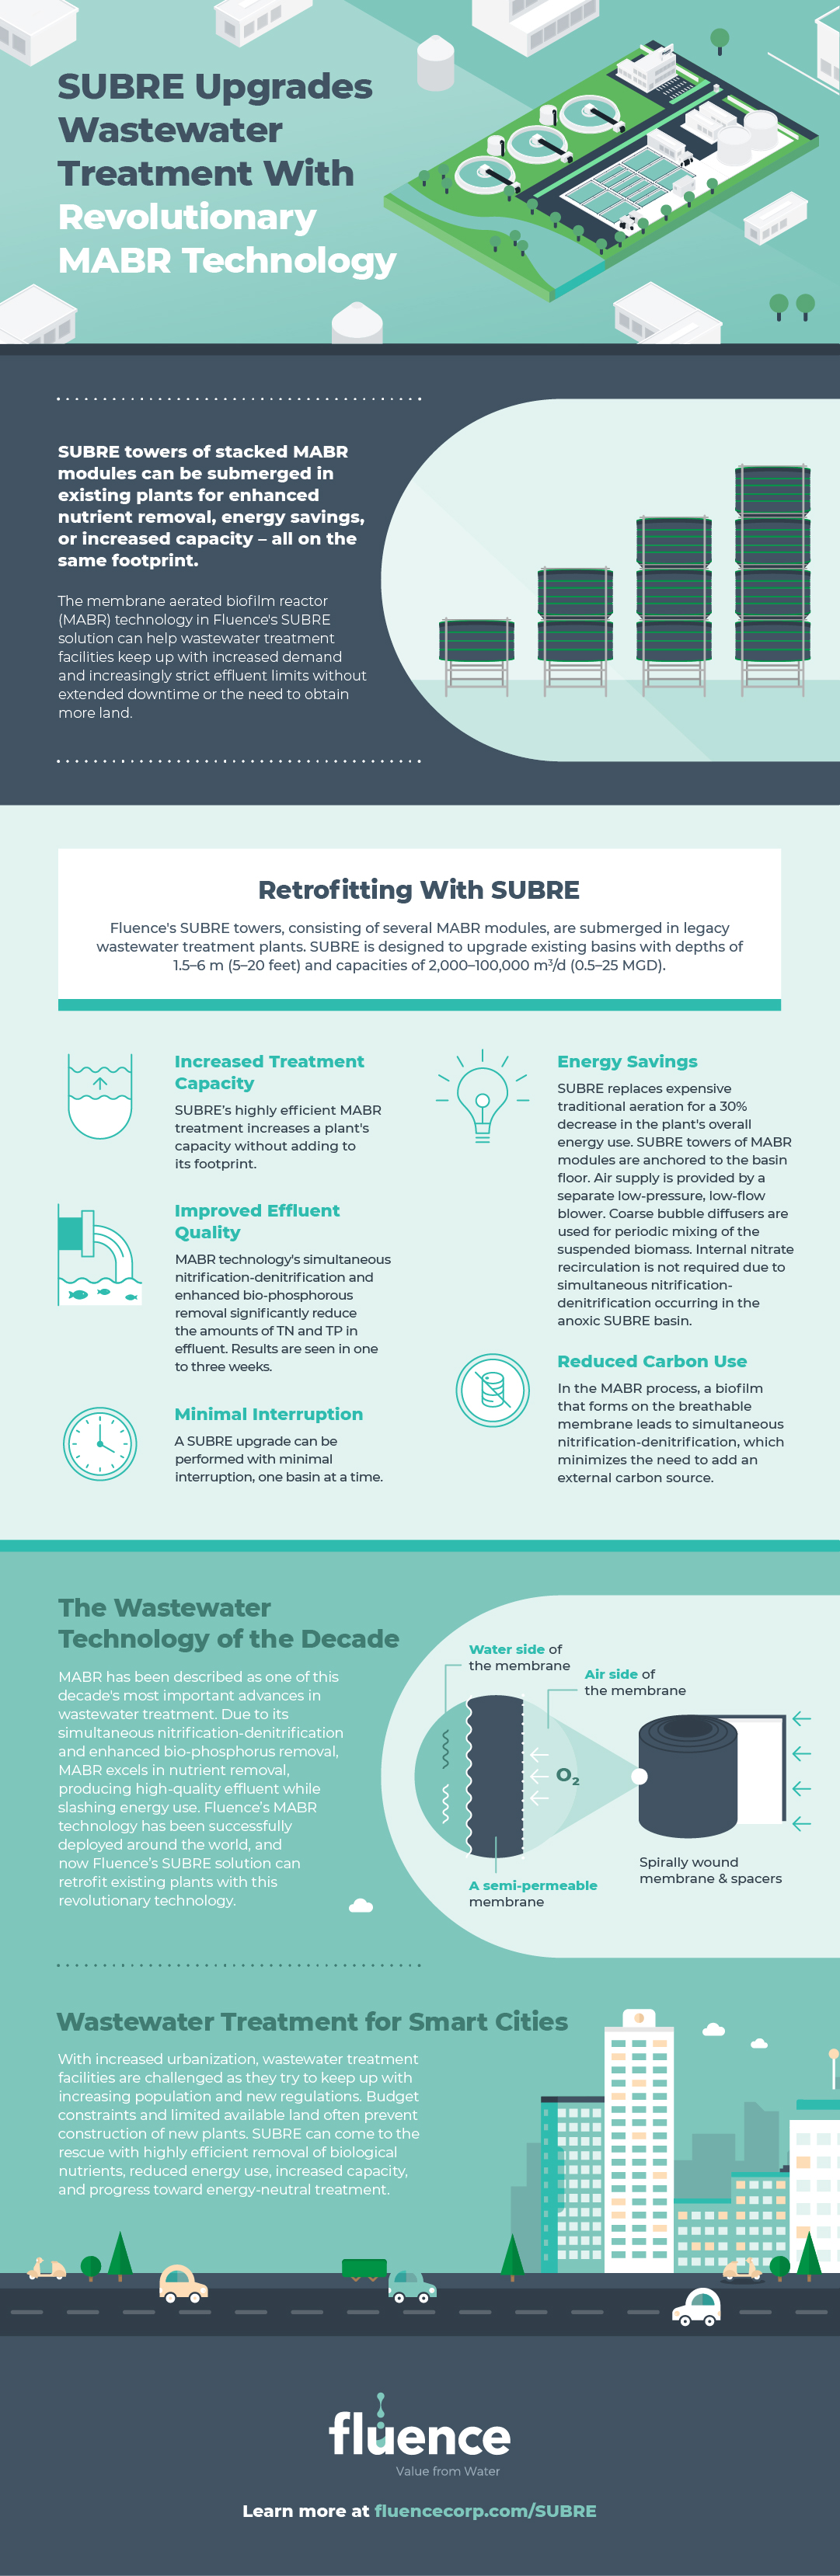 SUBRE MABR Wastewater Treatment Infographic